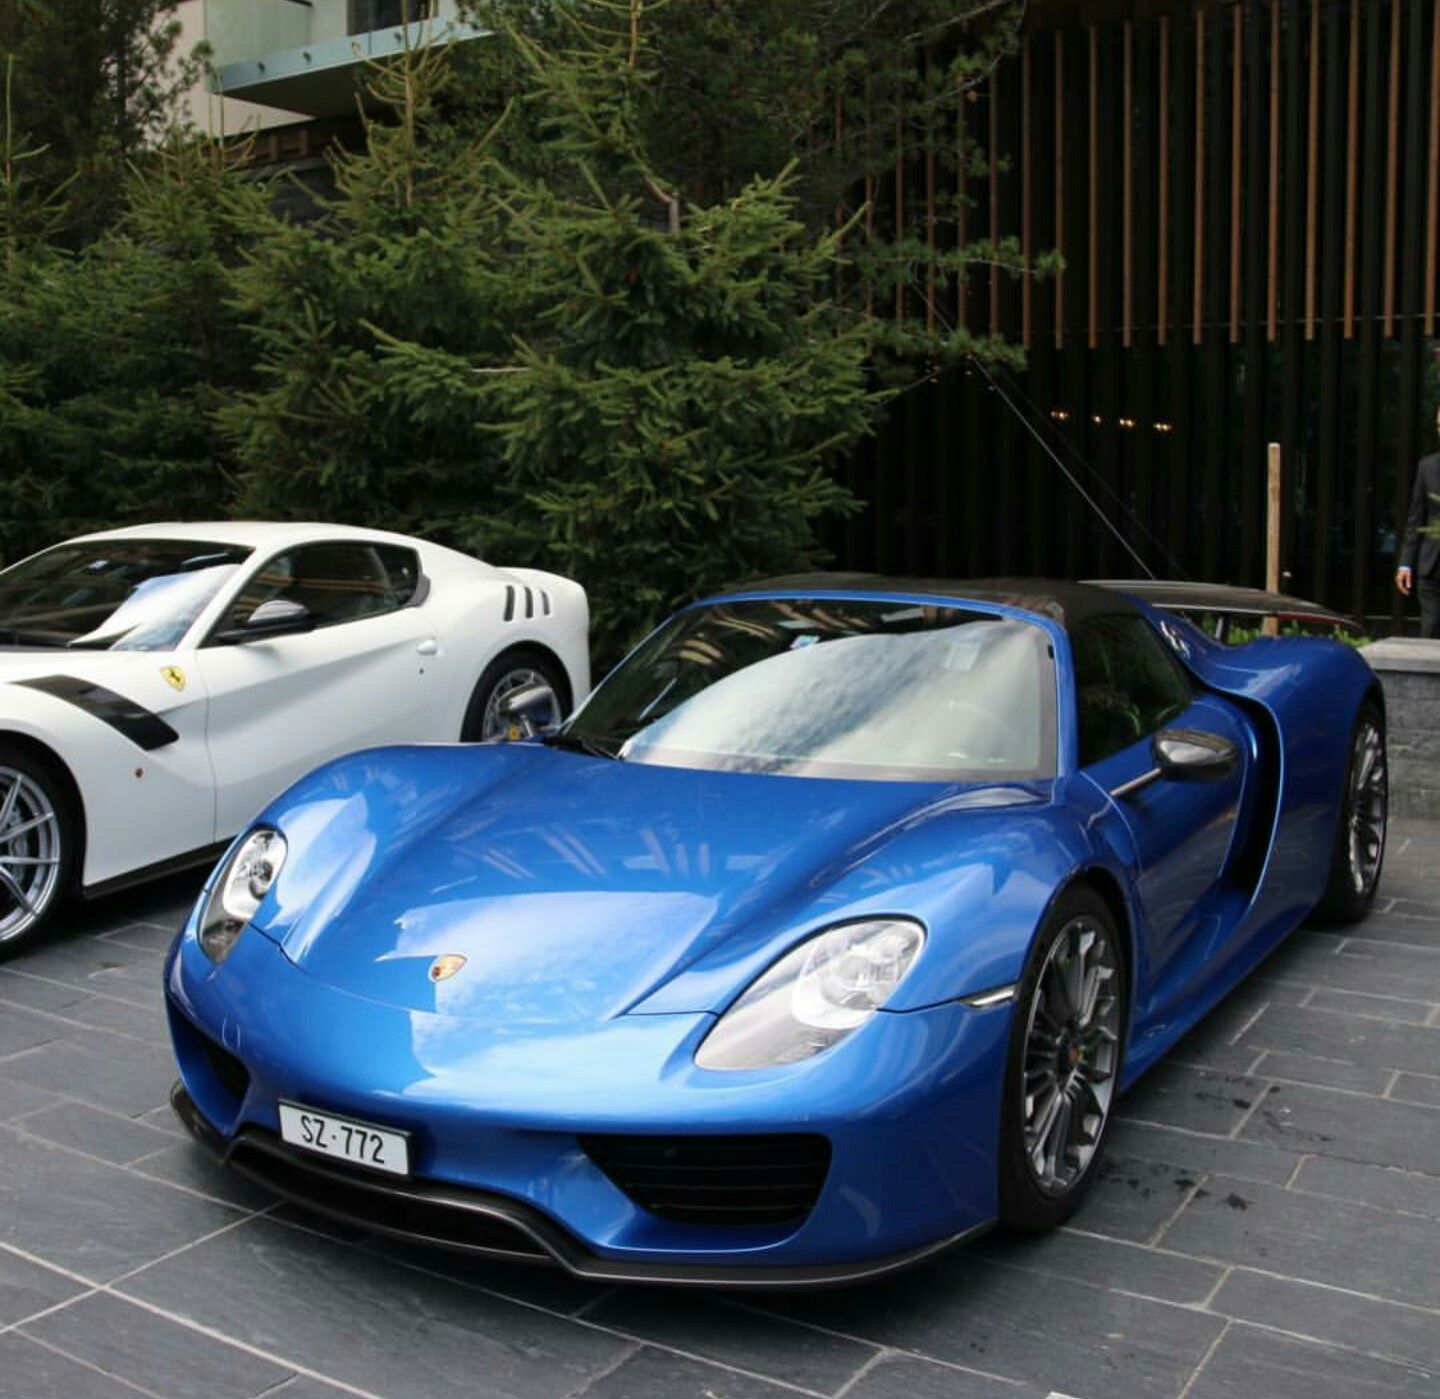 Porsche 918 Spider and Ferrari F12 tdf Super cars